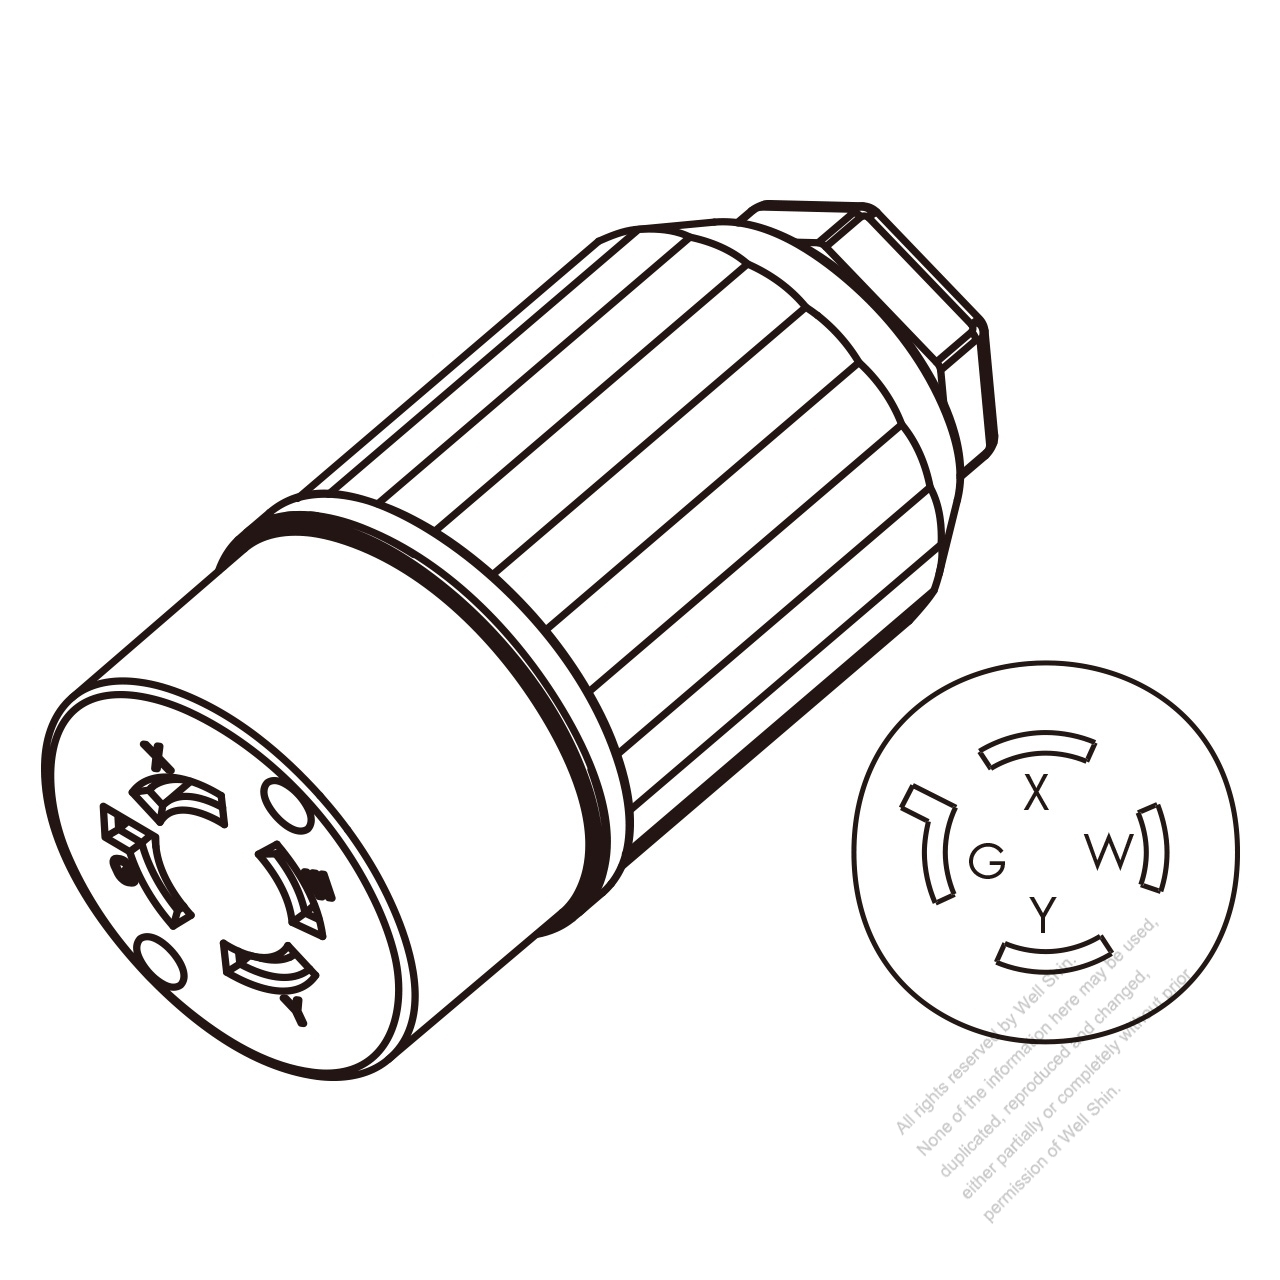 USA/Canada Twist-Lock Connector (NEMA L14-20R) 4-Pin